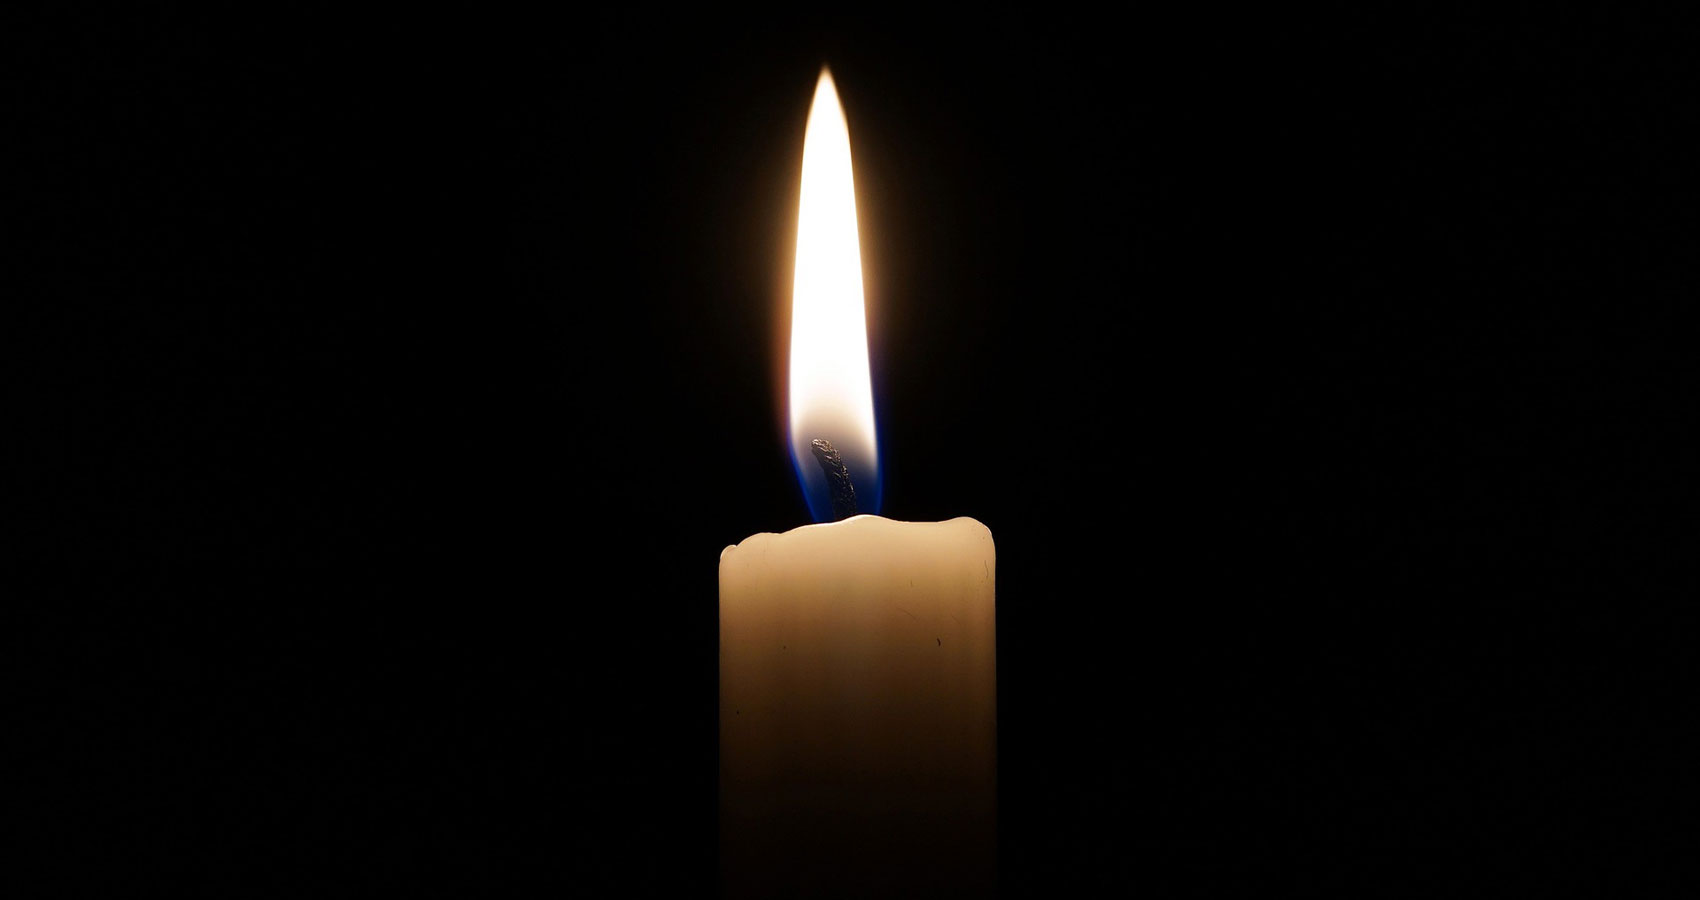 My Encounter With A Candle, written by Amit Agarwalla at Spillwords.com